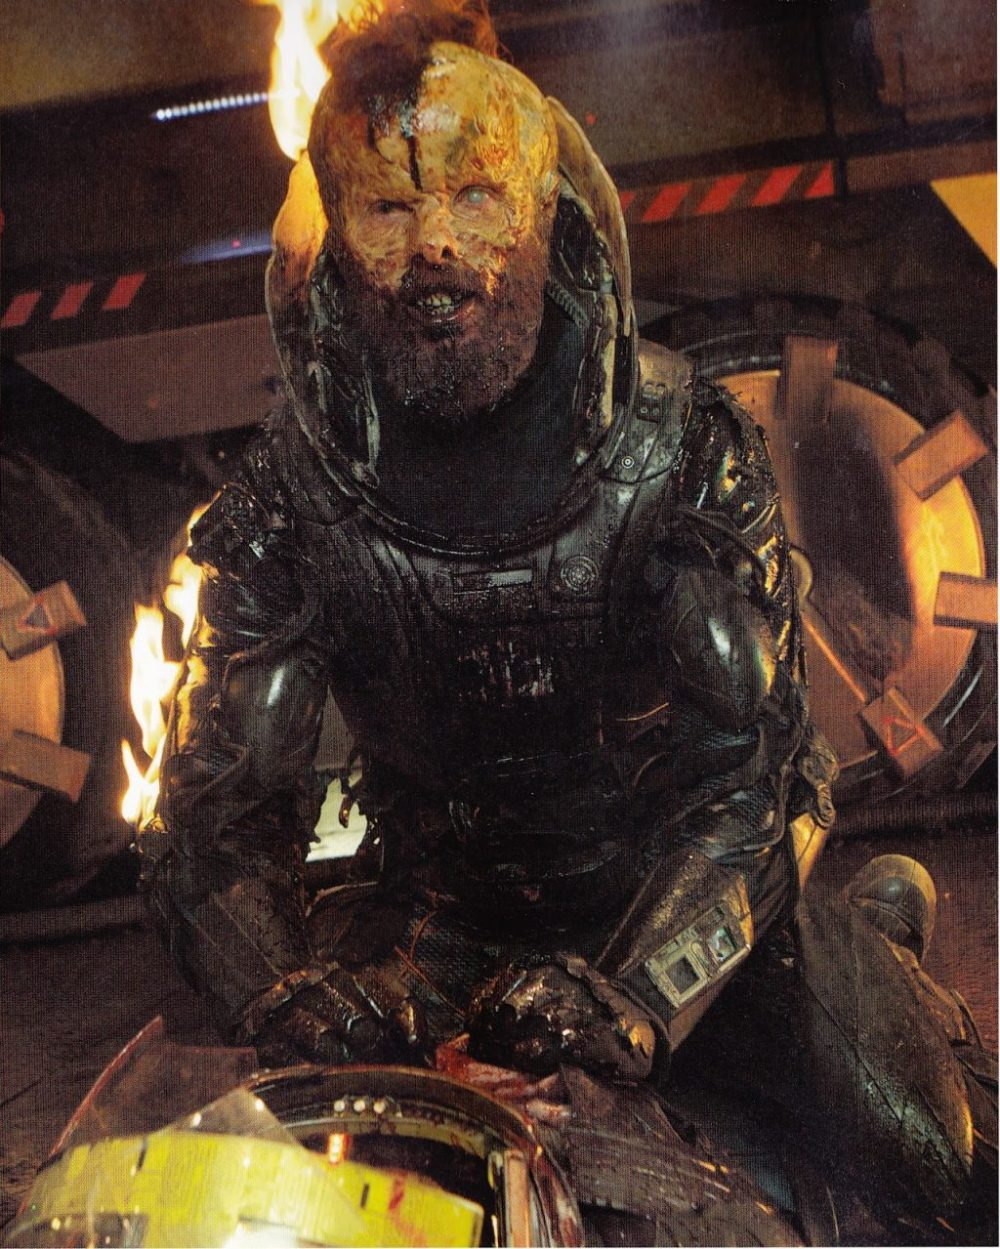 Mutated Fifield in Prometheus